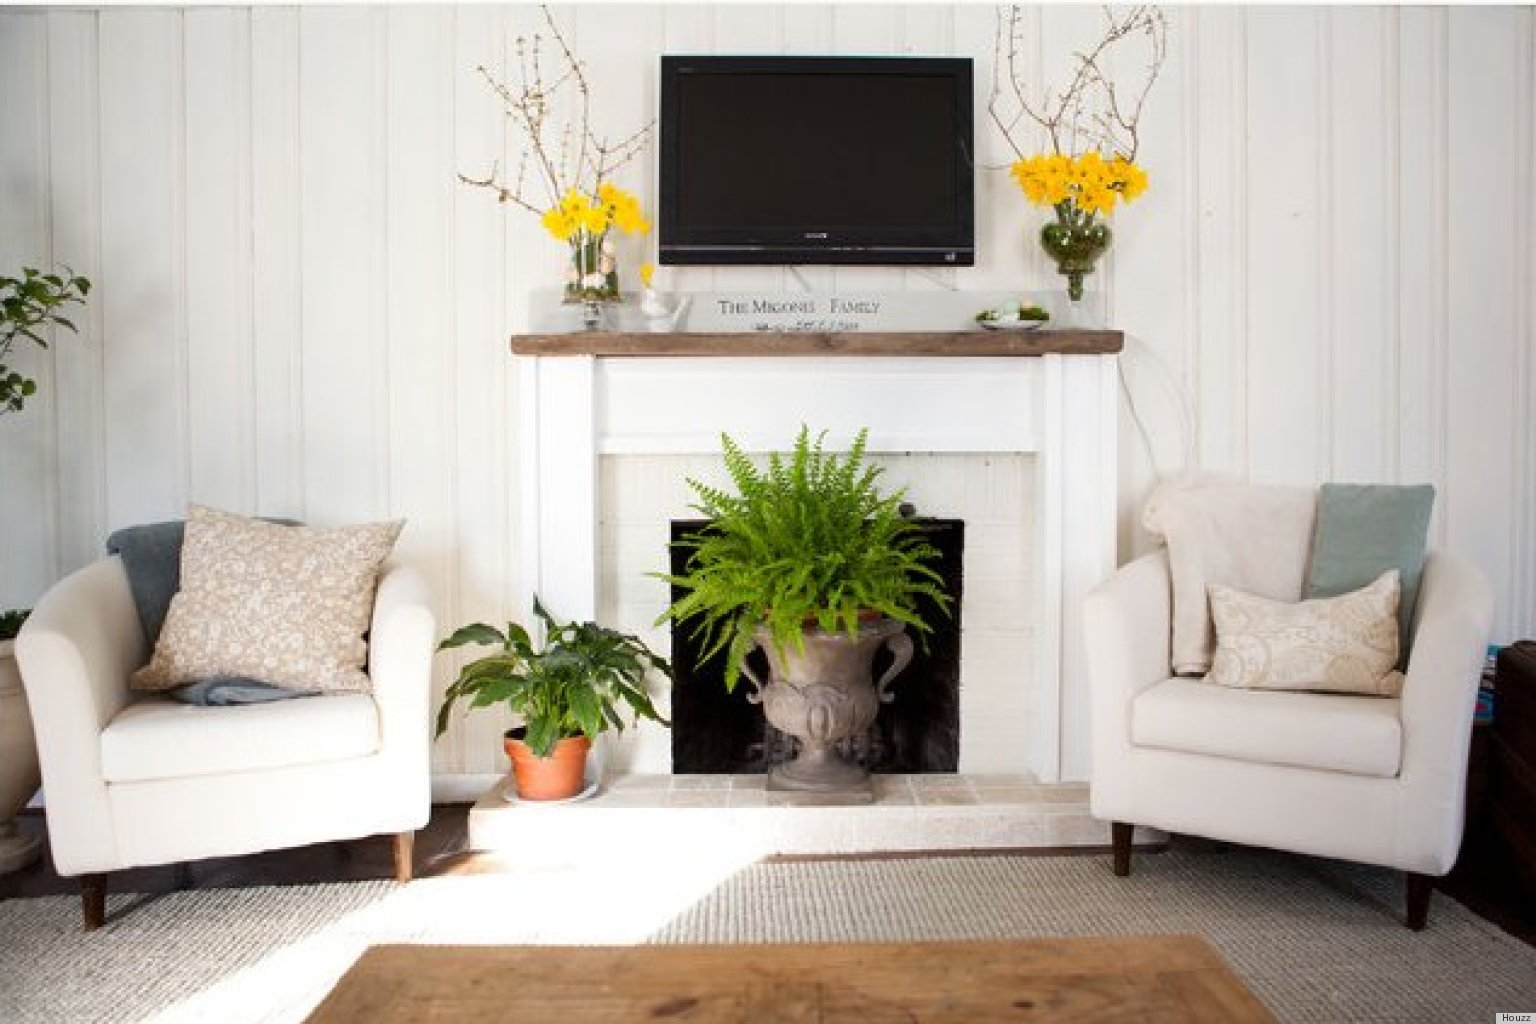 10 ways to decorate your fireplace in the summer since you wont 10 ways to decorate your fireplace in the summer since you wont need it anyway photos huffpost teraionfo